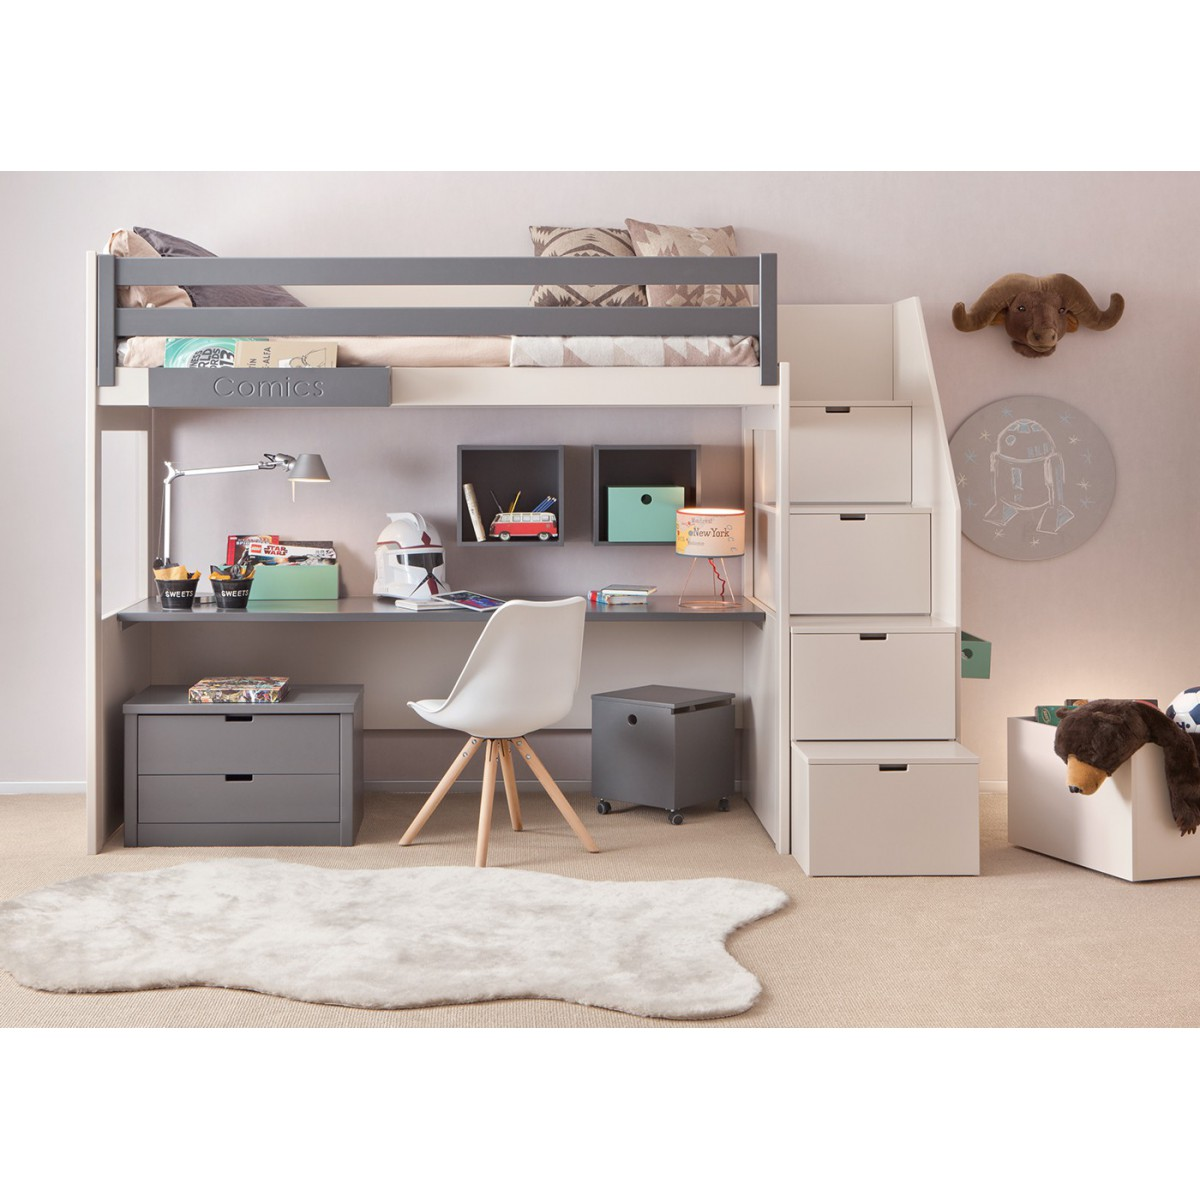 Chambre design sp cial ados juniors sign enfant design - Lit mezzanine 1 place bureau integre ...